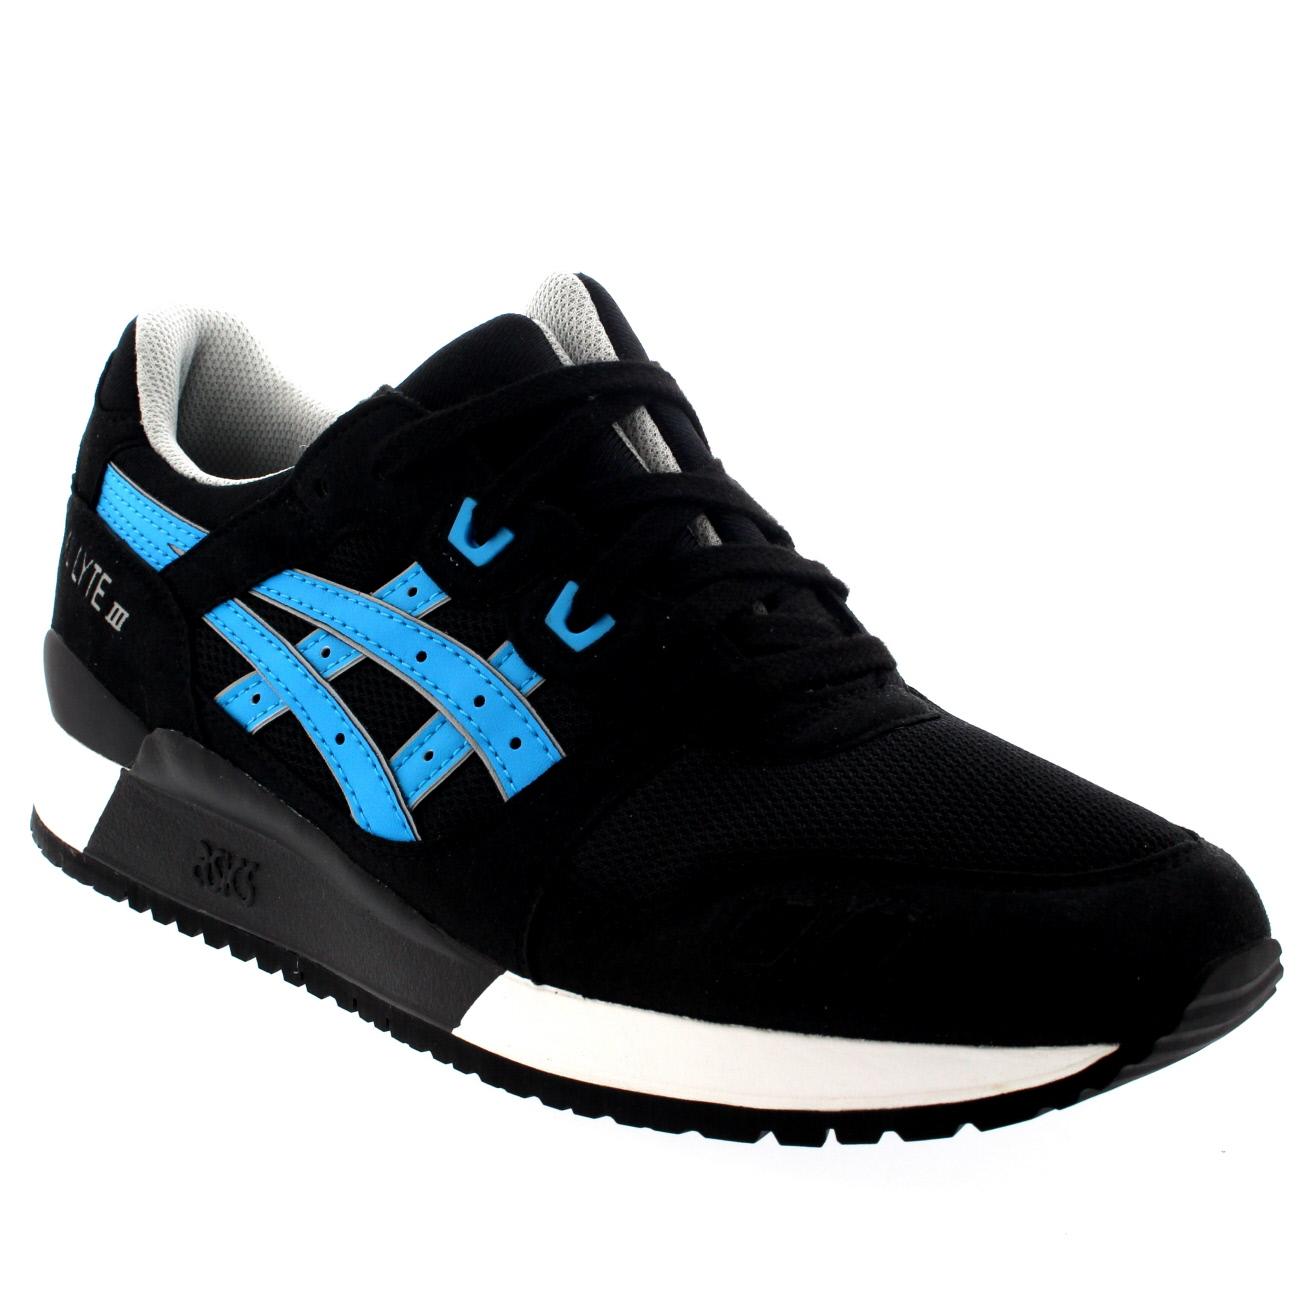 Mens Asics Gel-Lyte III Running Sports Fashion Walking Low Top Trainers UK 7-12